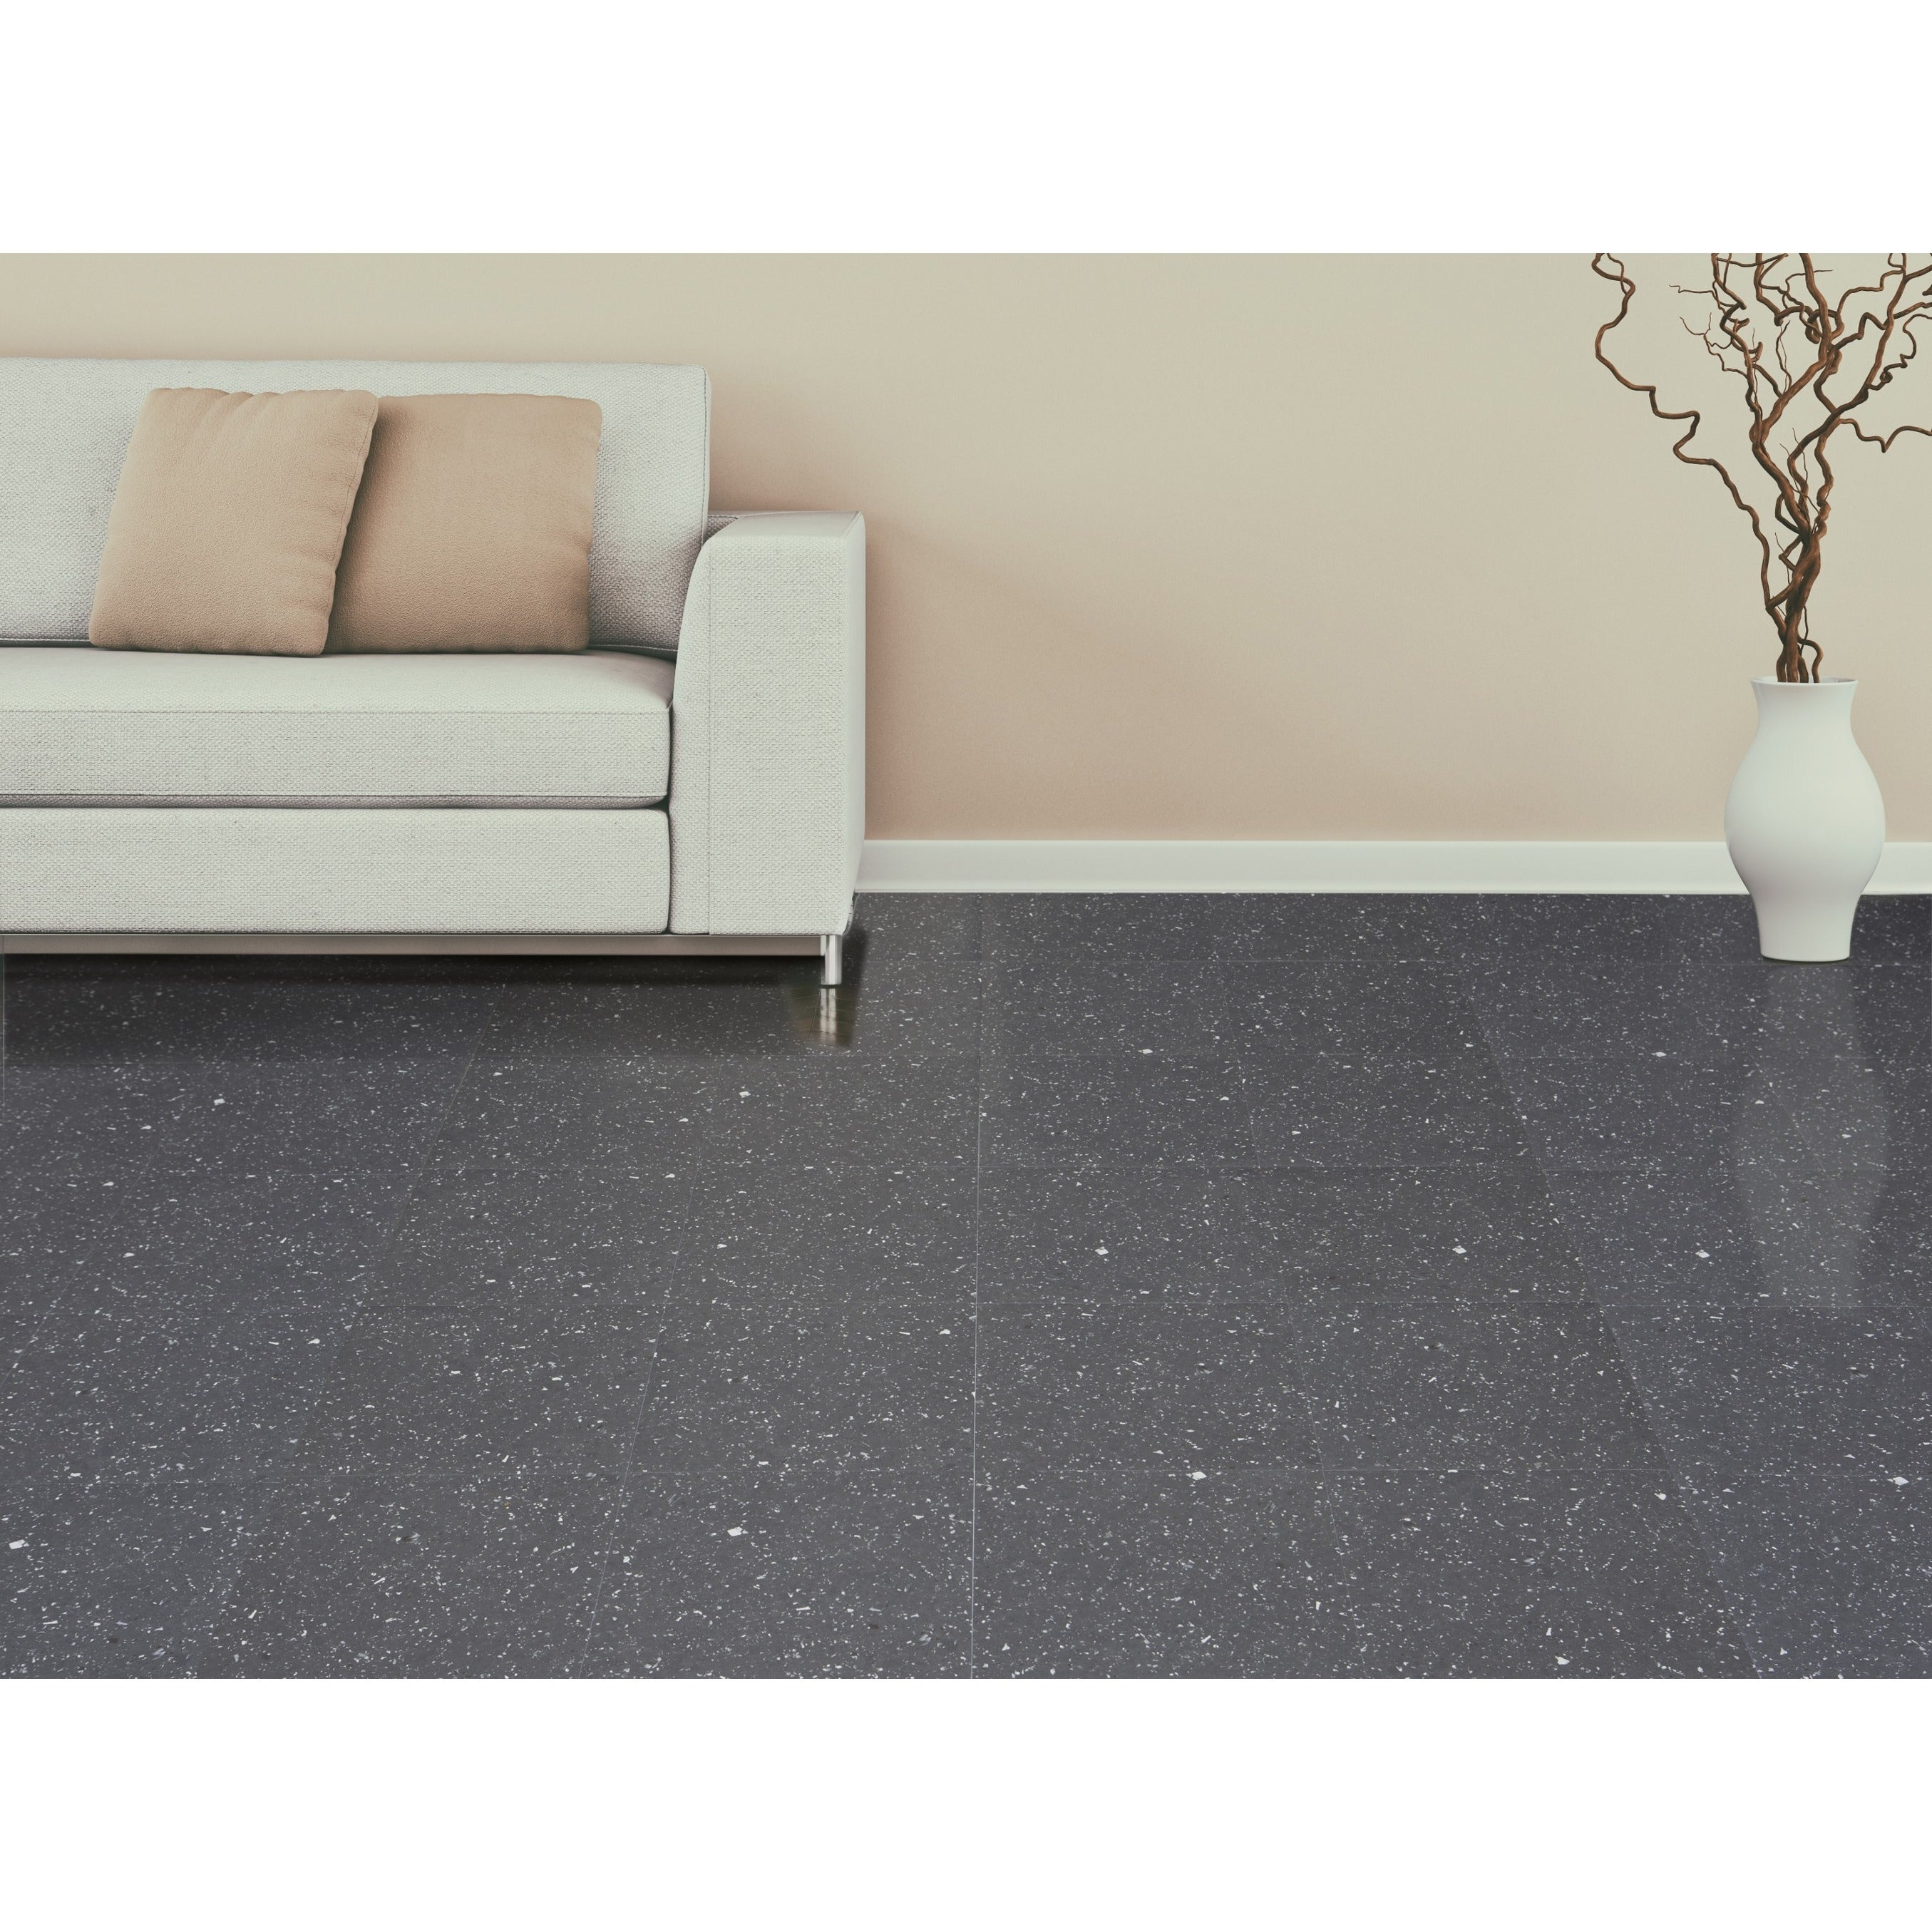 Achim sterling black speckled granite 12 inch x 12 inch self achim sterling black speckled granite 12 inch x 12 inch self adhesive vinyl floor tile case of 20 tiles2 free shipping on orders over 45 dailygadgetfo Image collections